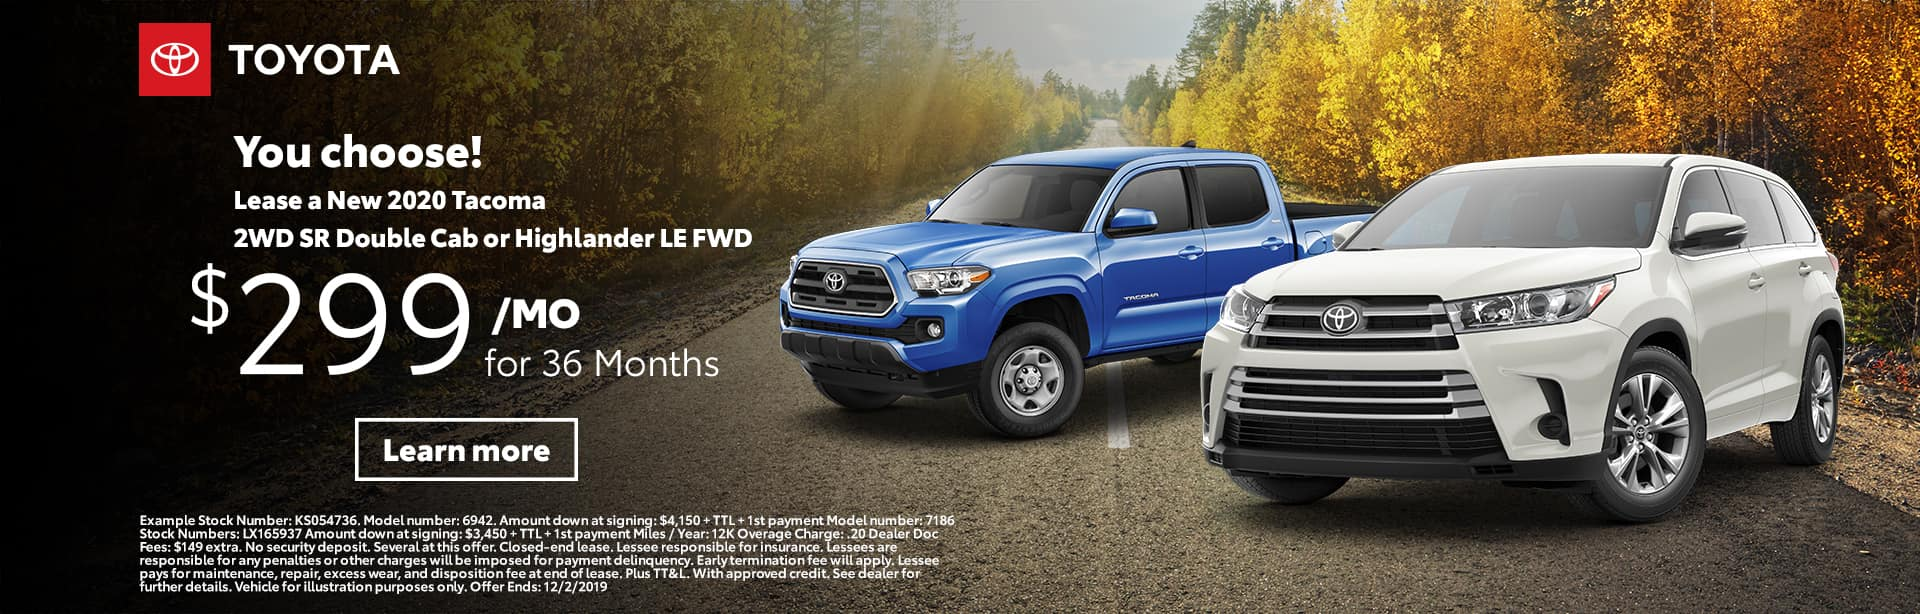 2020 Tacoma 2WD SR Double Cab or Highlander LE FWD | Sterling McCall Toyota